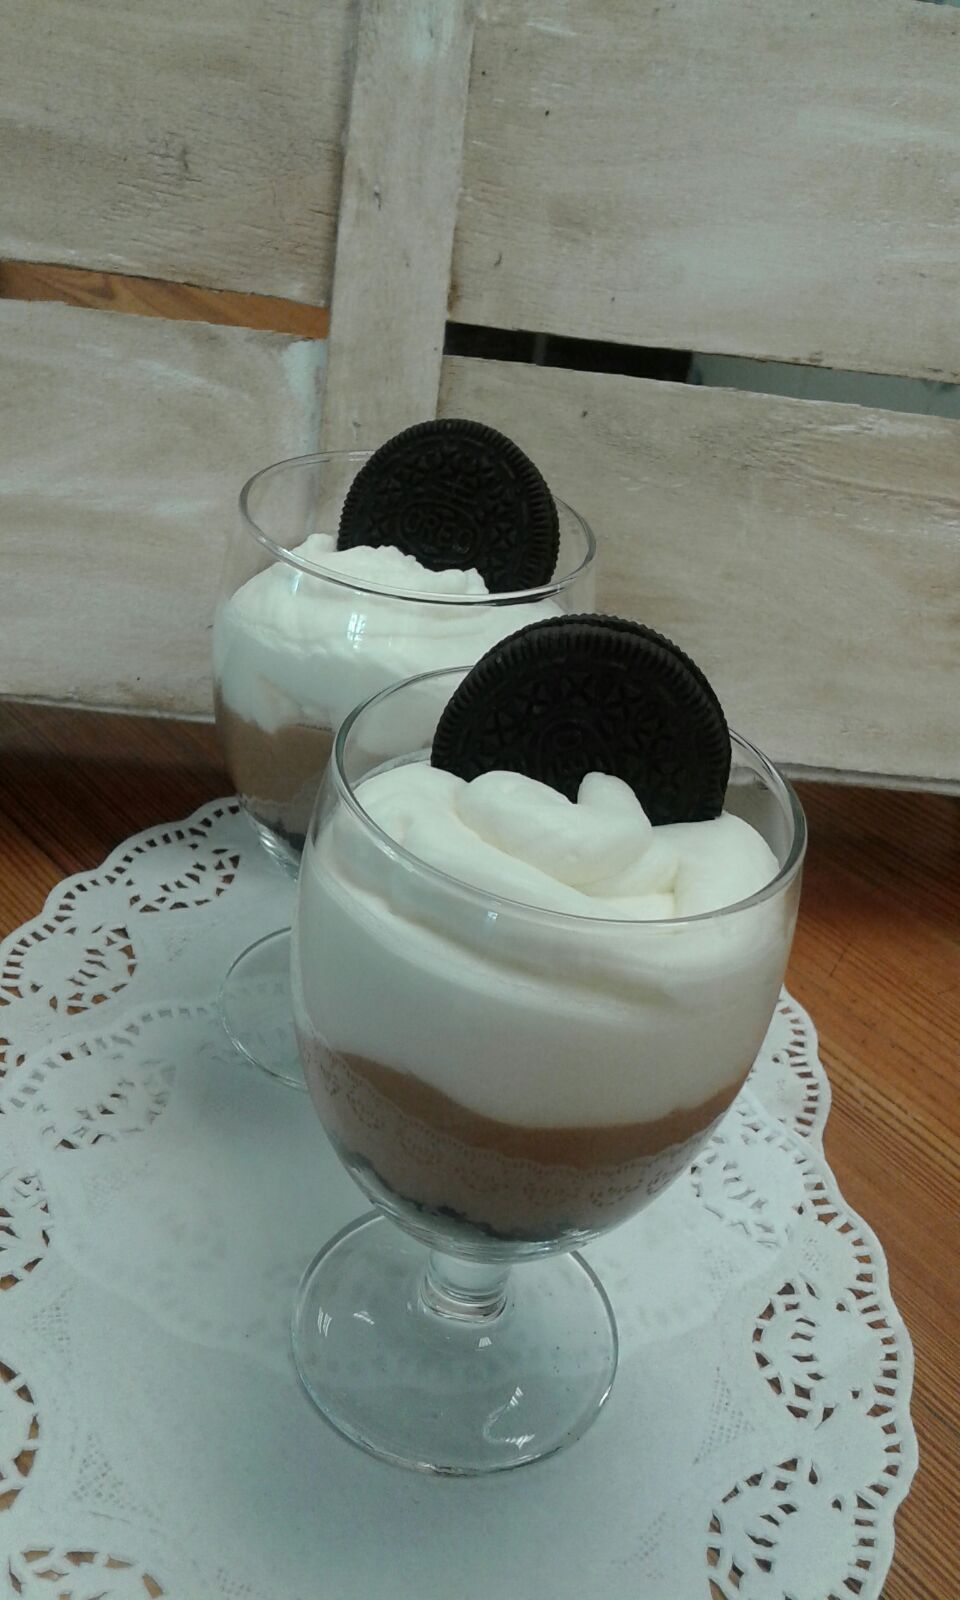 Vasitos de crema de Nocilla y galletas Oreo